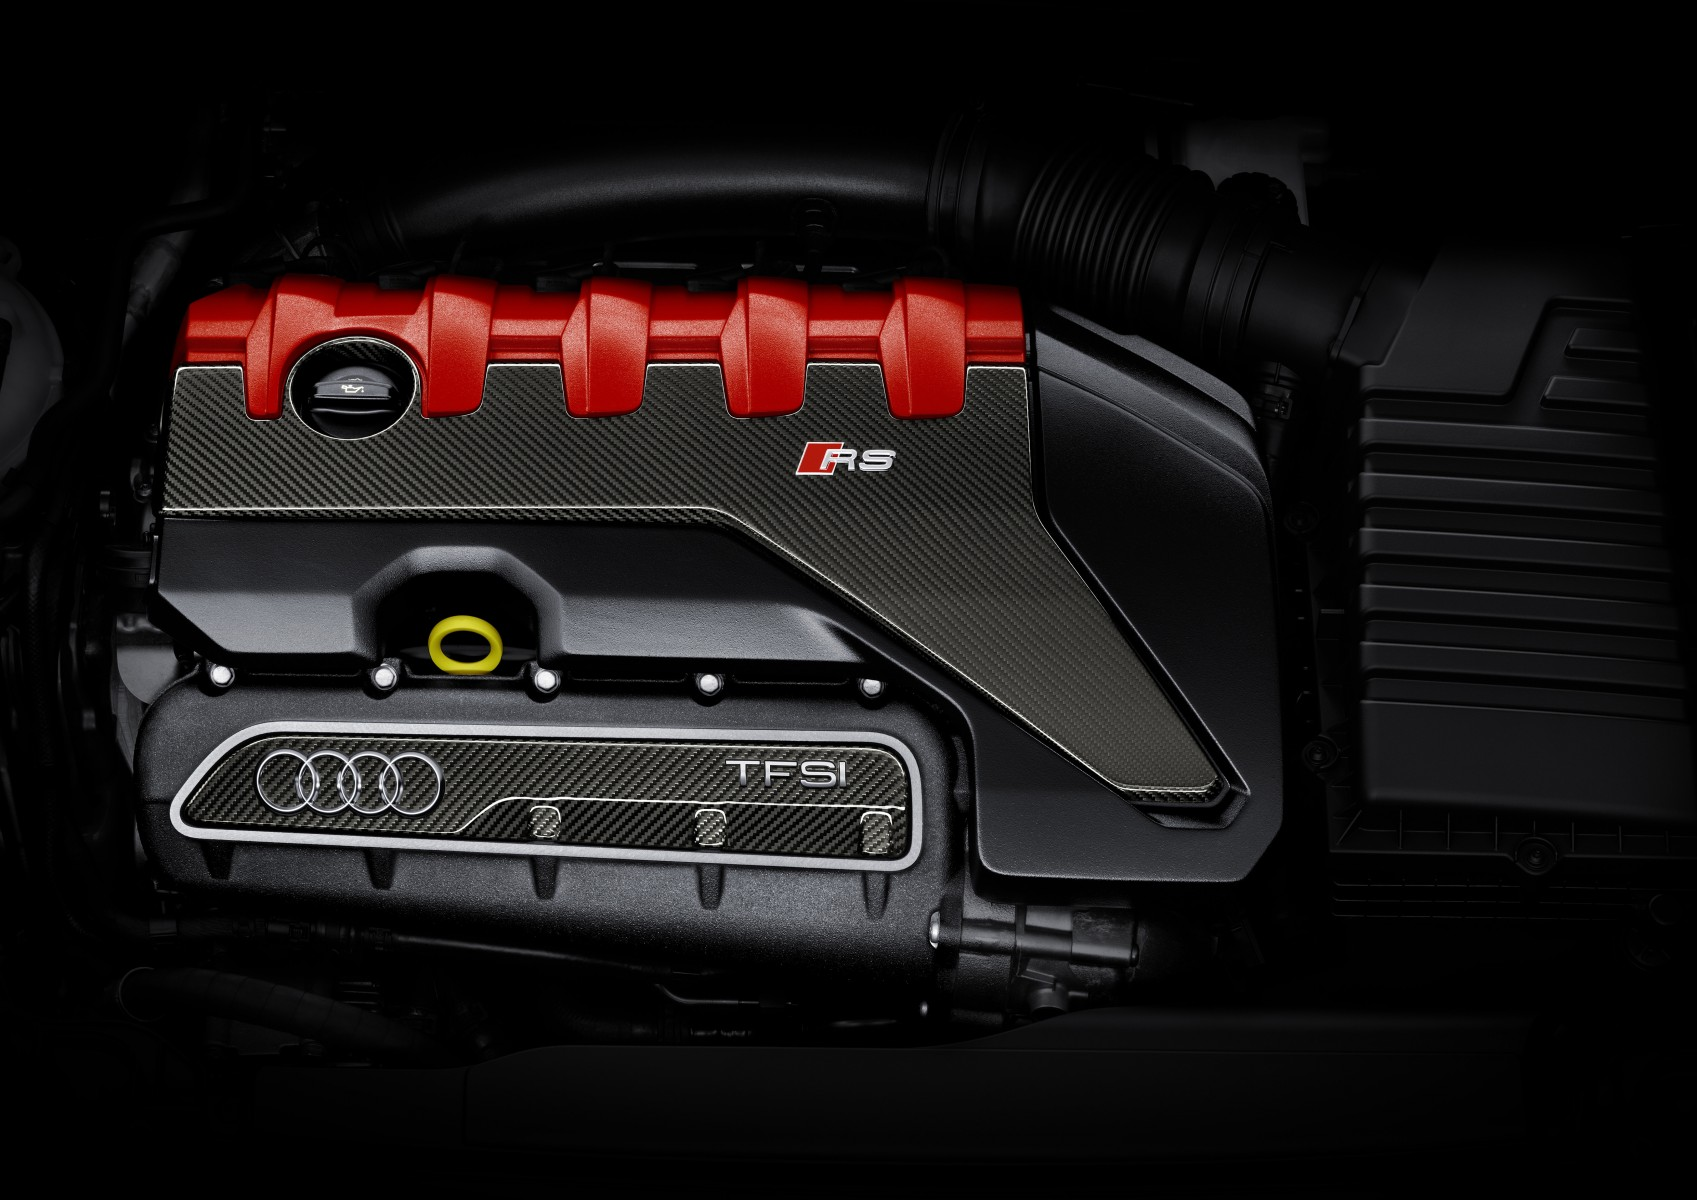 High five: Audi vijfcilinder opnieuw International Engine of the Year